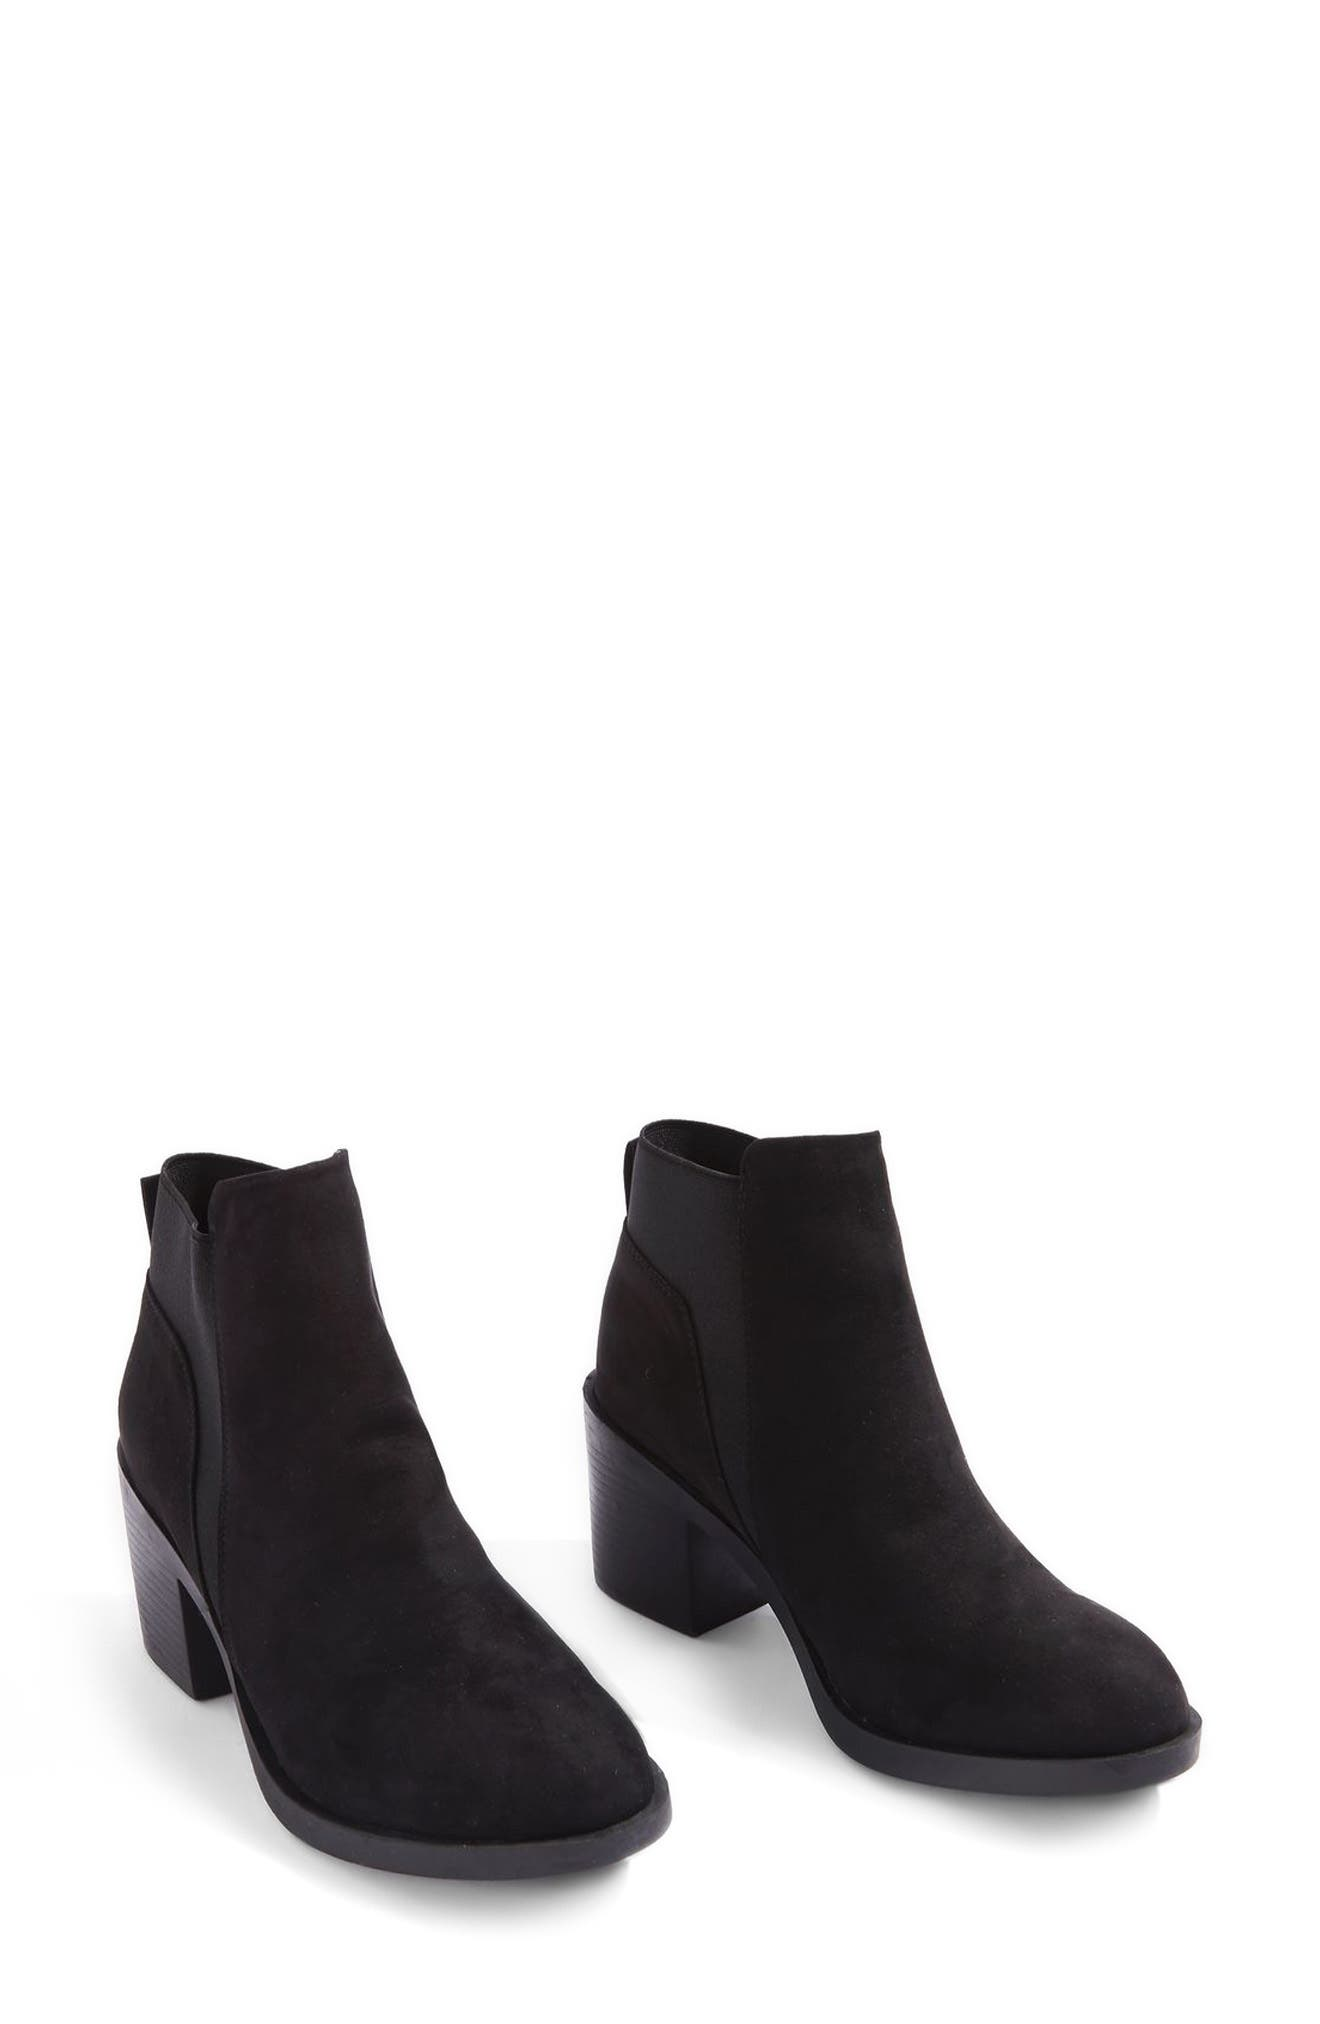 Buddy Block Heel Bootie,                         Main,                         color, Black